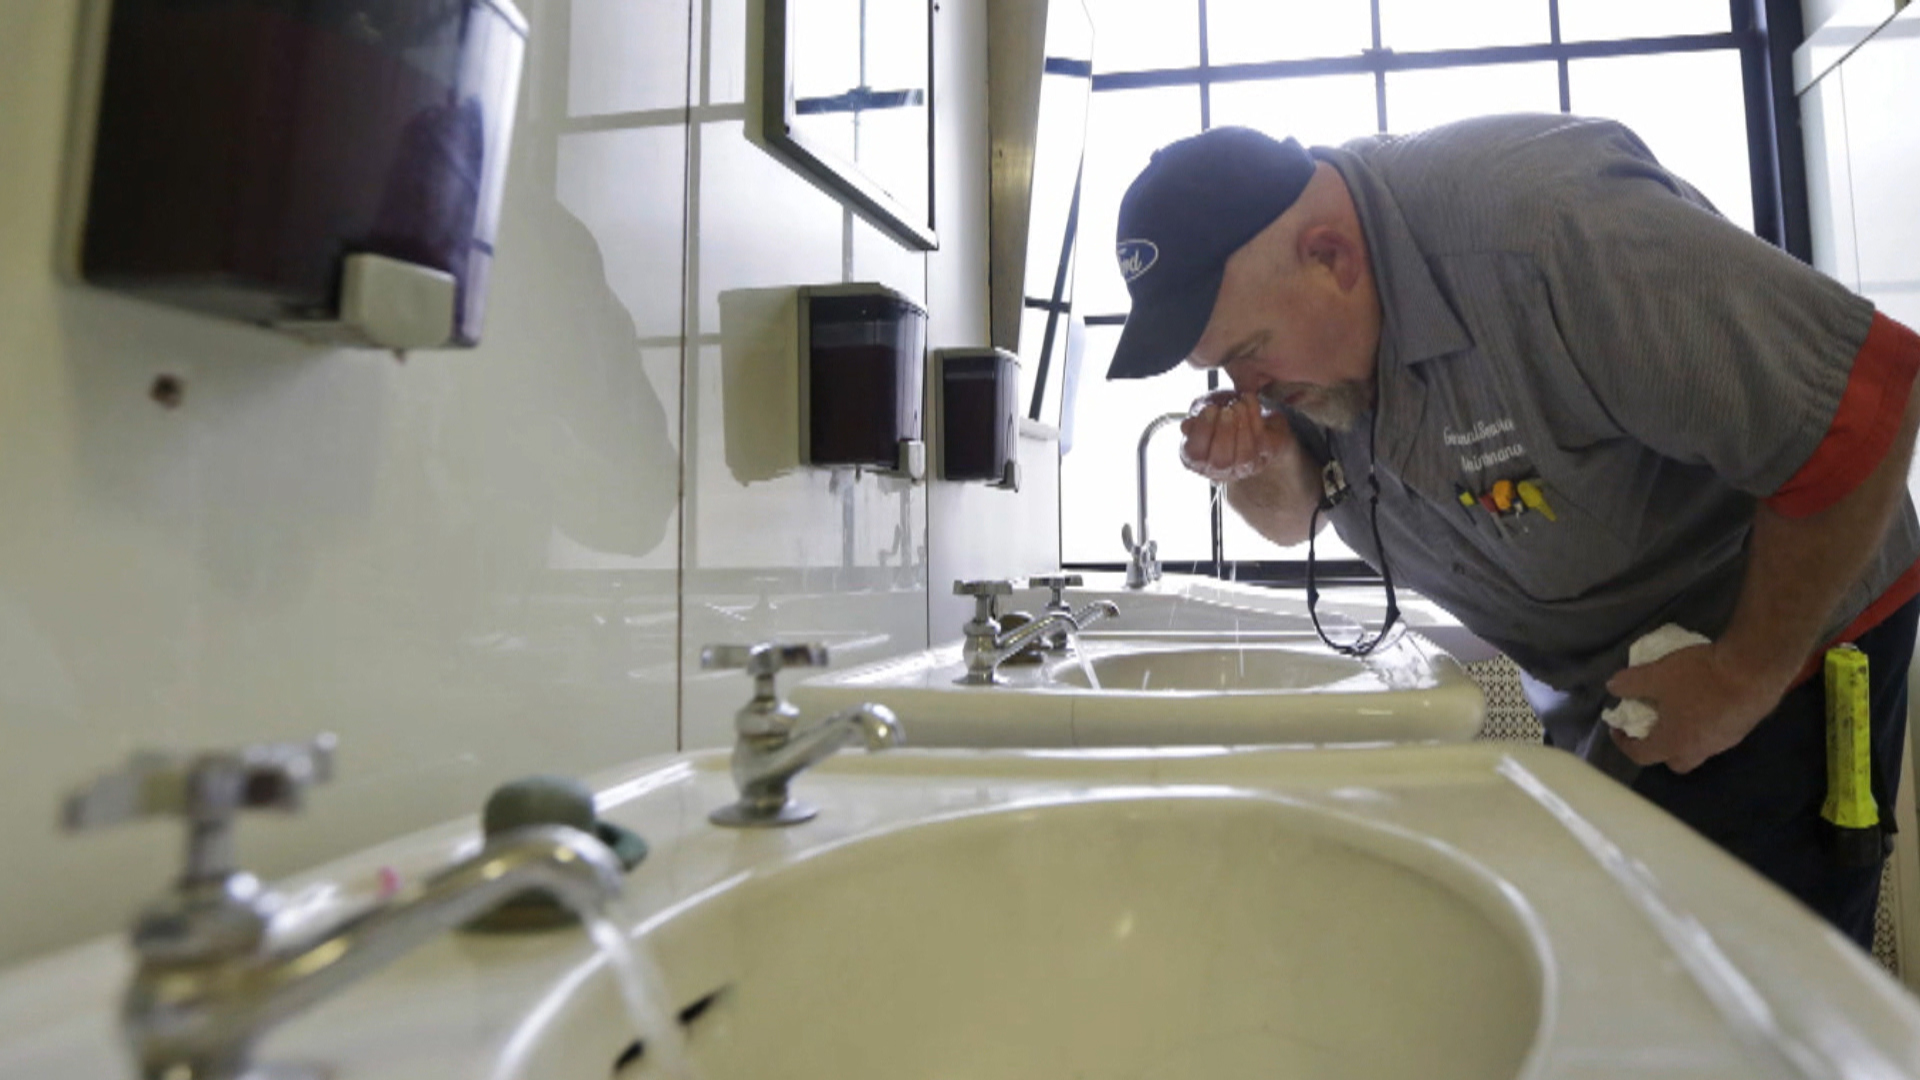 West Virginians wants action after spill